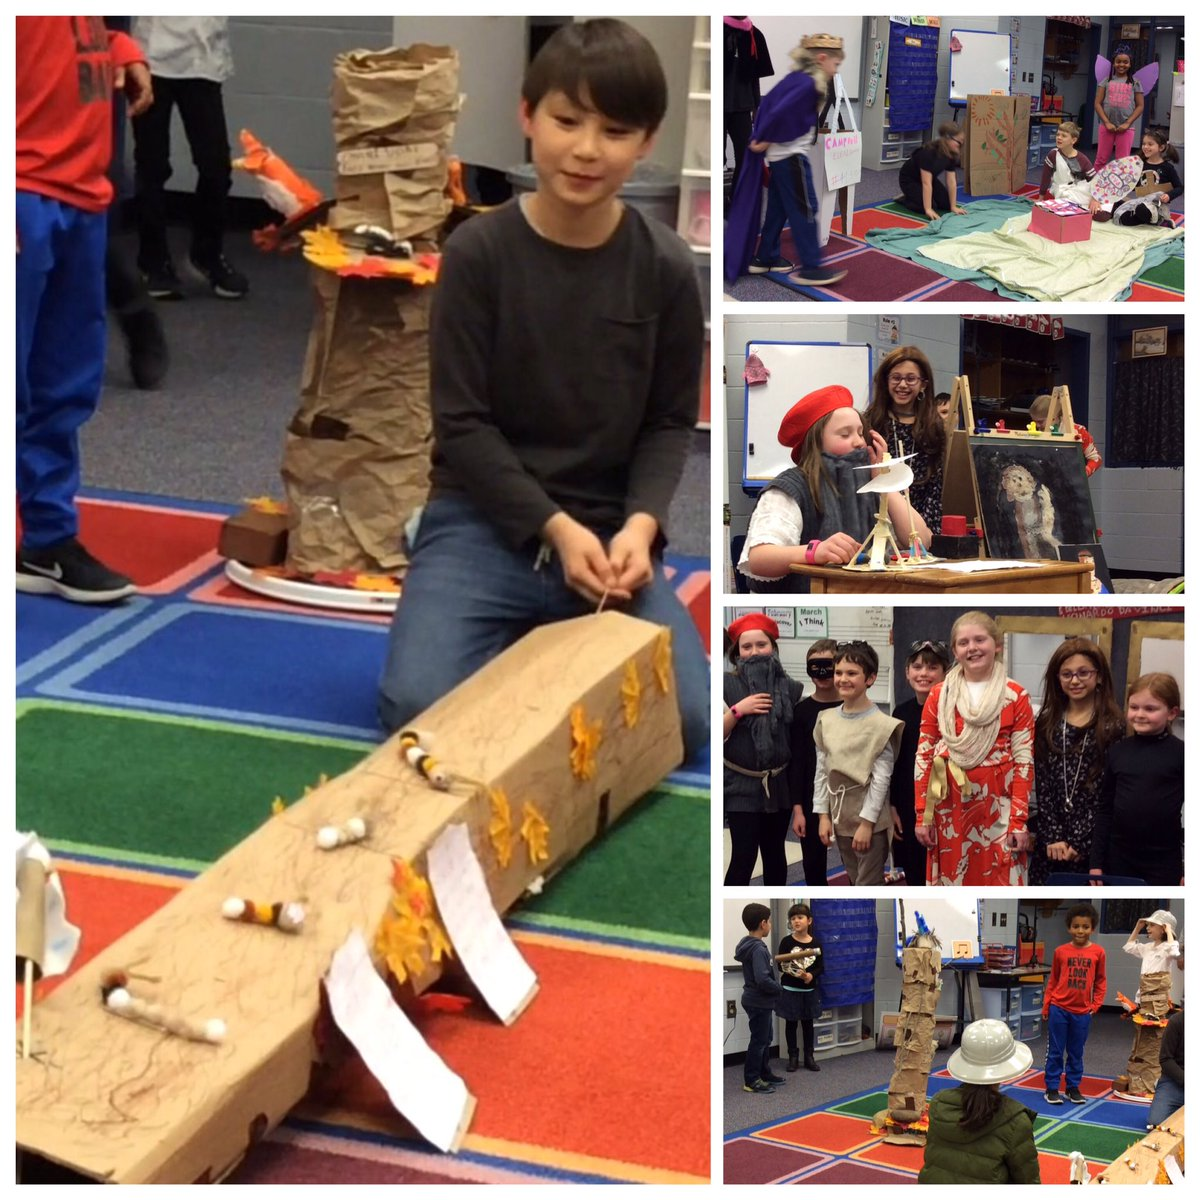 Creative problem solving was on display <a target='_blank' href='http://twitter.com/CampbellAPS'>@CampbellAPS</a> Odyssey of the Mind Preview Night!  The big day is coming up Saturday.  Wish them luck! <a target='_blank' href='http://twitter.com/APSGifted'>@APSGifted</a> <a target='_blank' href='https://t.co/lRPoNnt17J'>https://t.co/lRPoNnt17J</a>